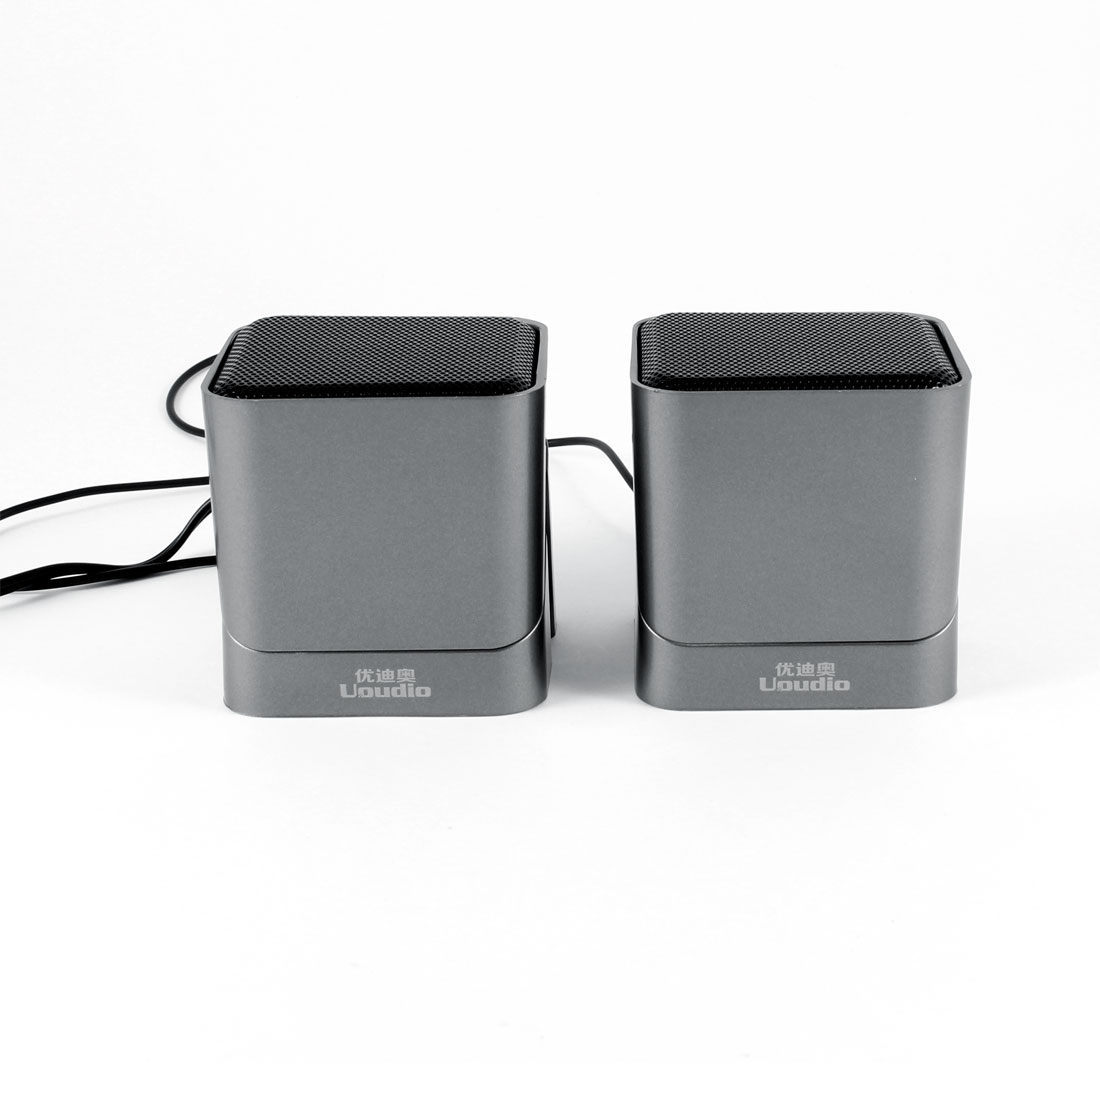 Silver Tone Volume Control USB 2.0 Desktop Mini Speaker Box Pair for MP4 PC Computer